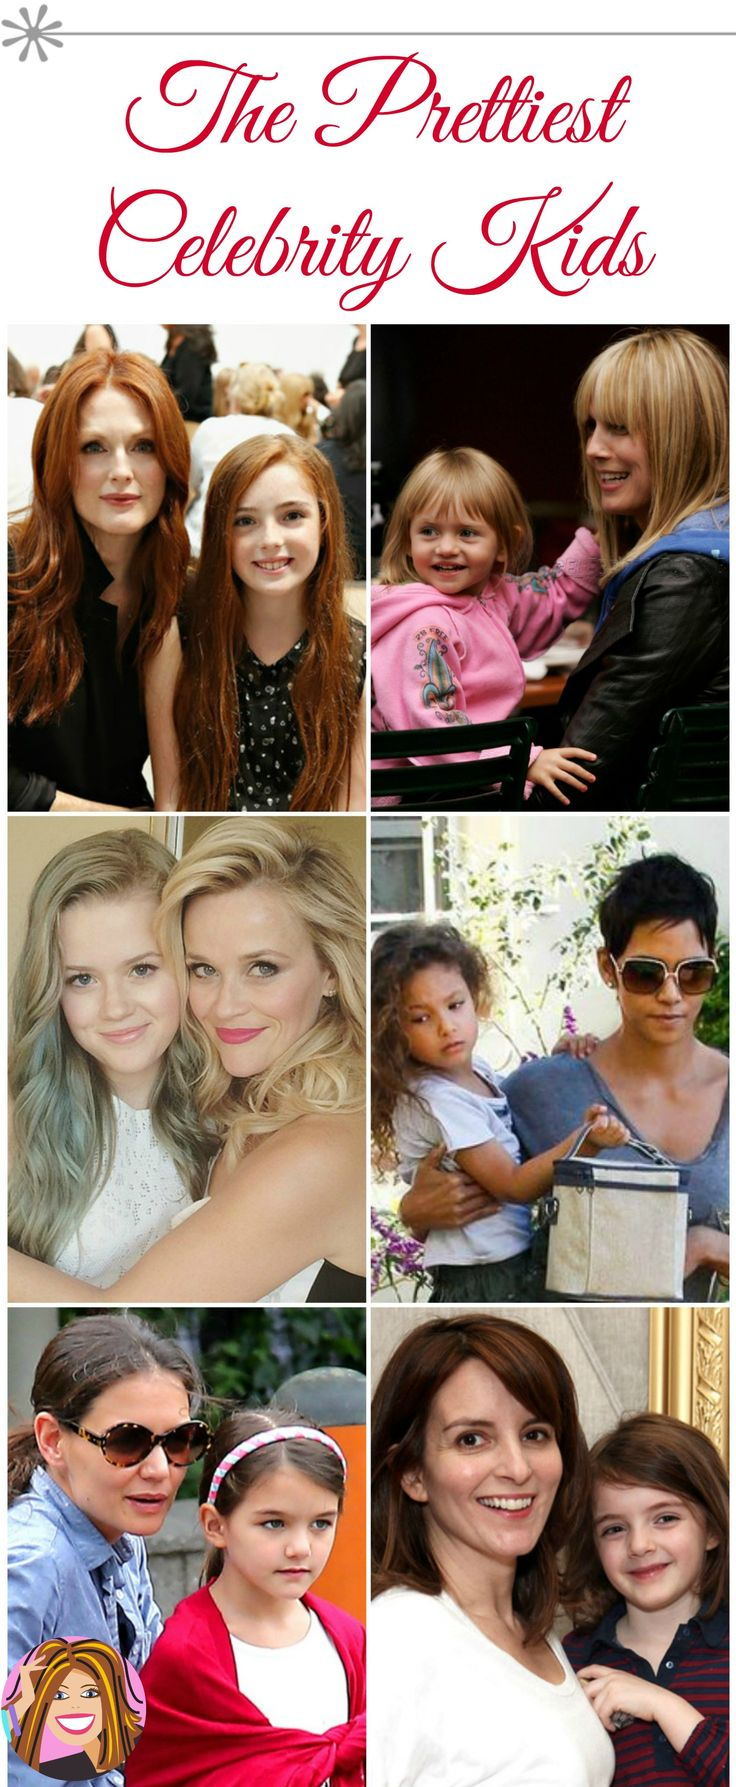 Celebrity kids definitely take after their gorgeous parents....